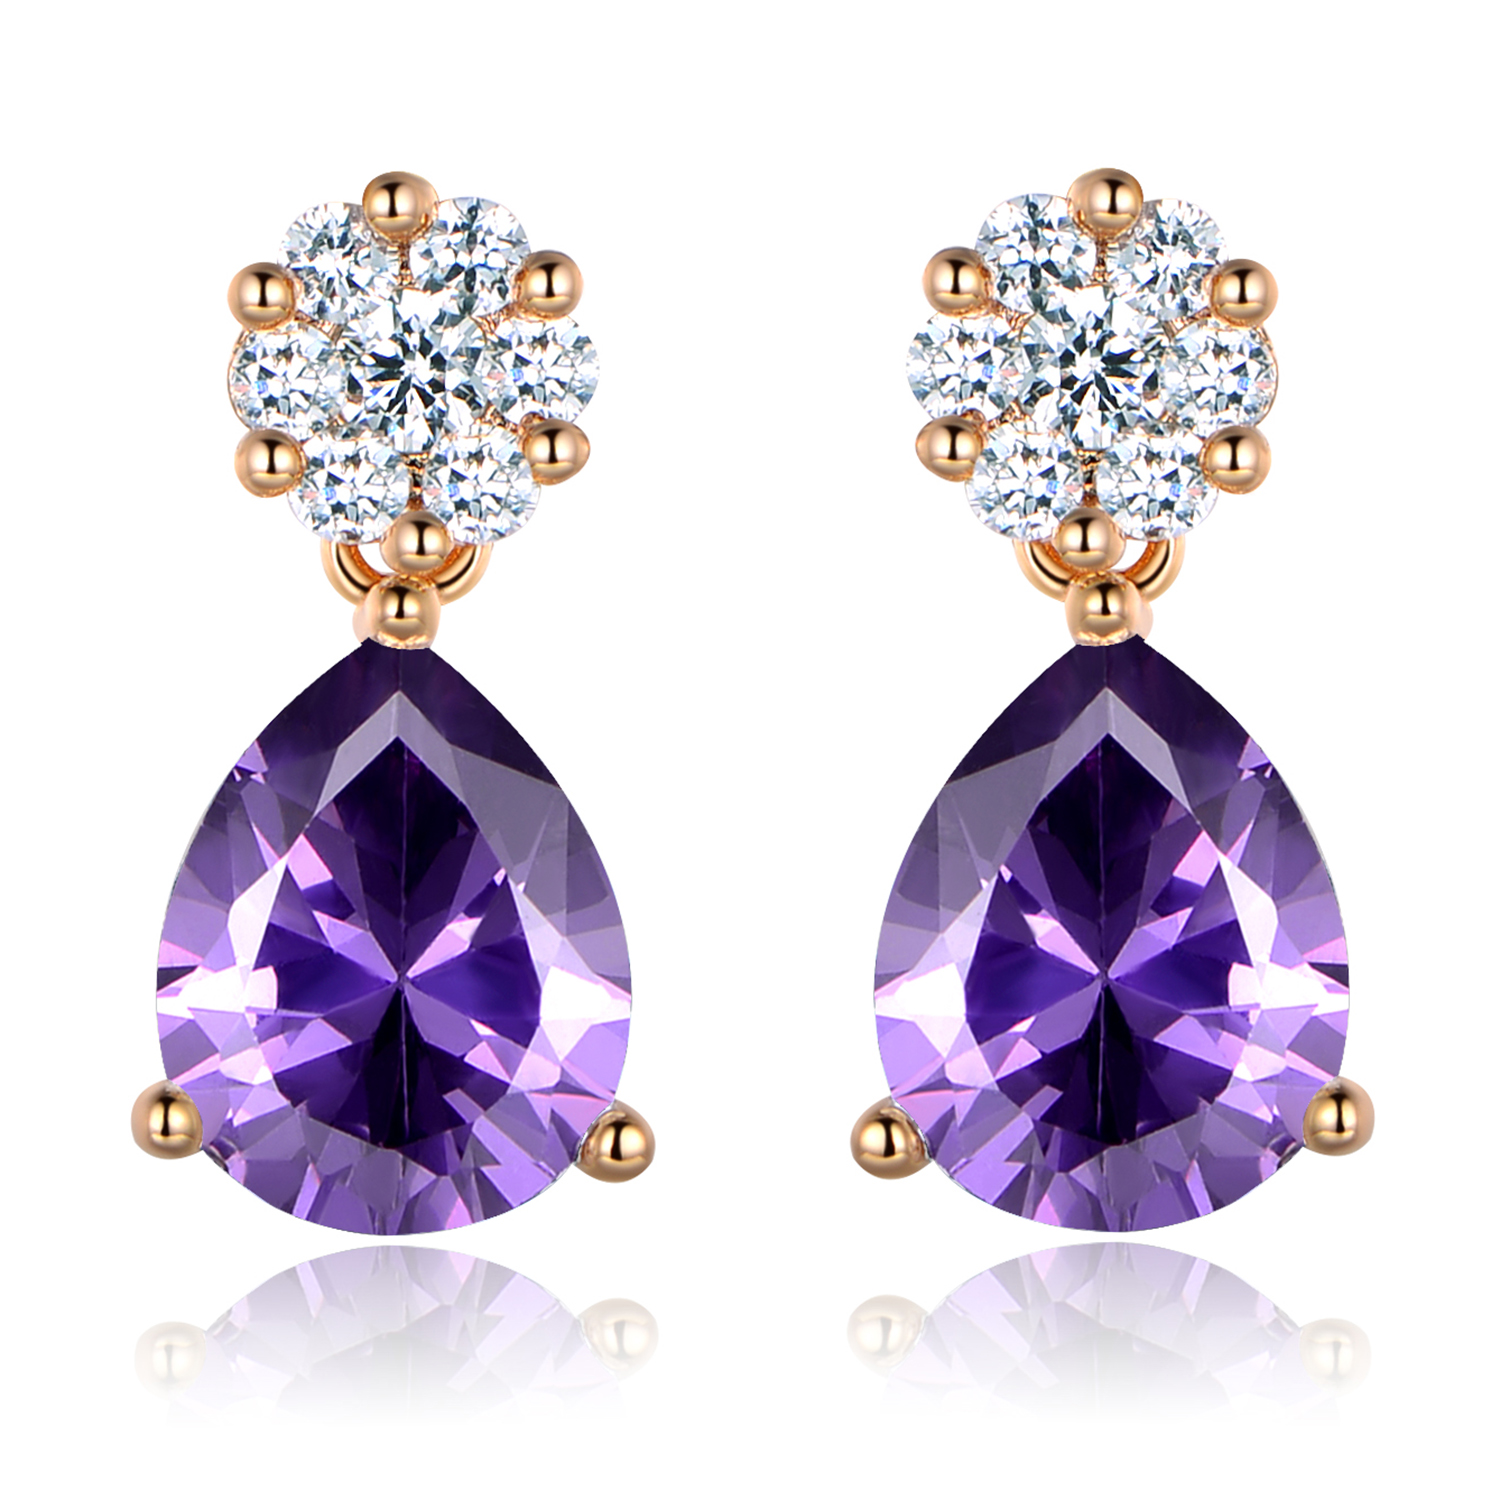 7b770a583 Details about Dangle Pear Raindrop Purple Swarovski Crystal Gold Filled  Women Stud Earring BOX